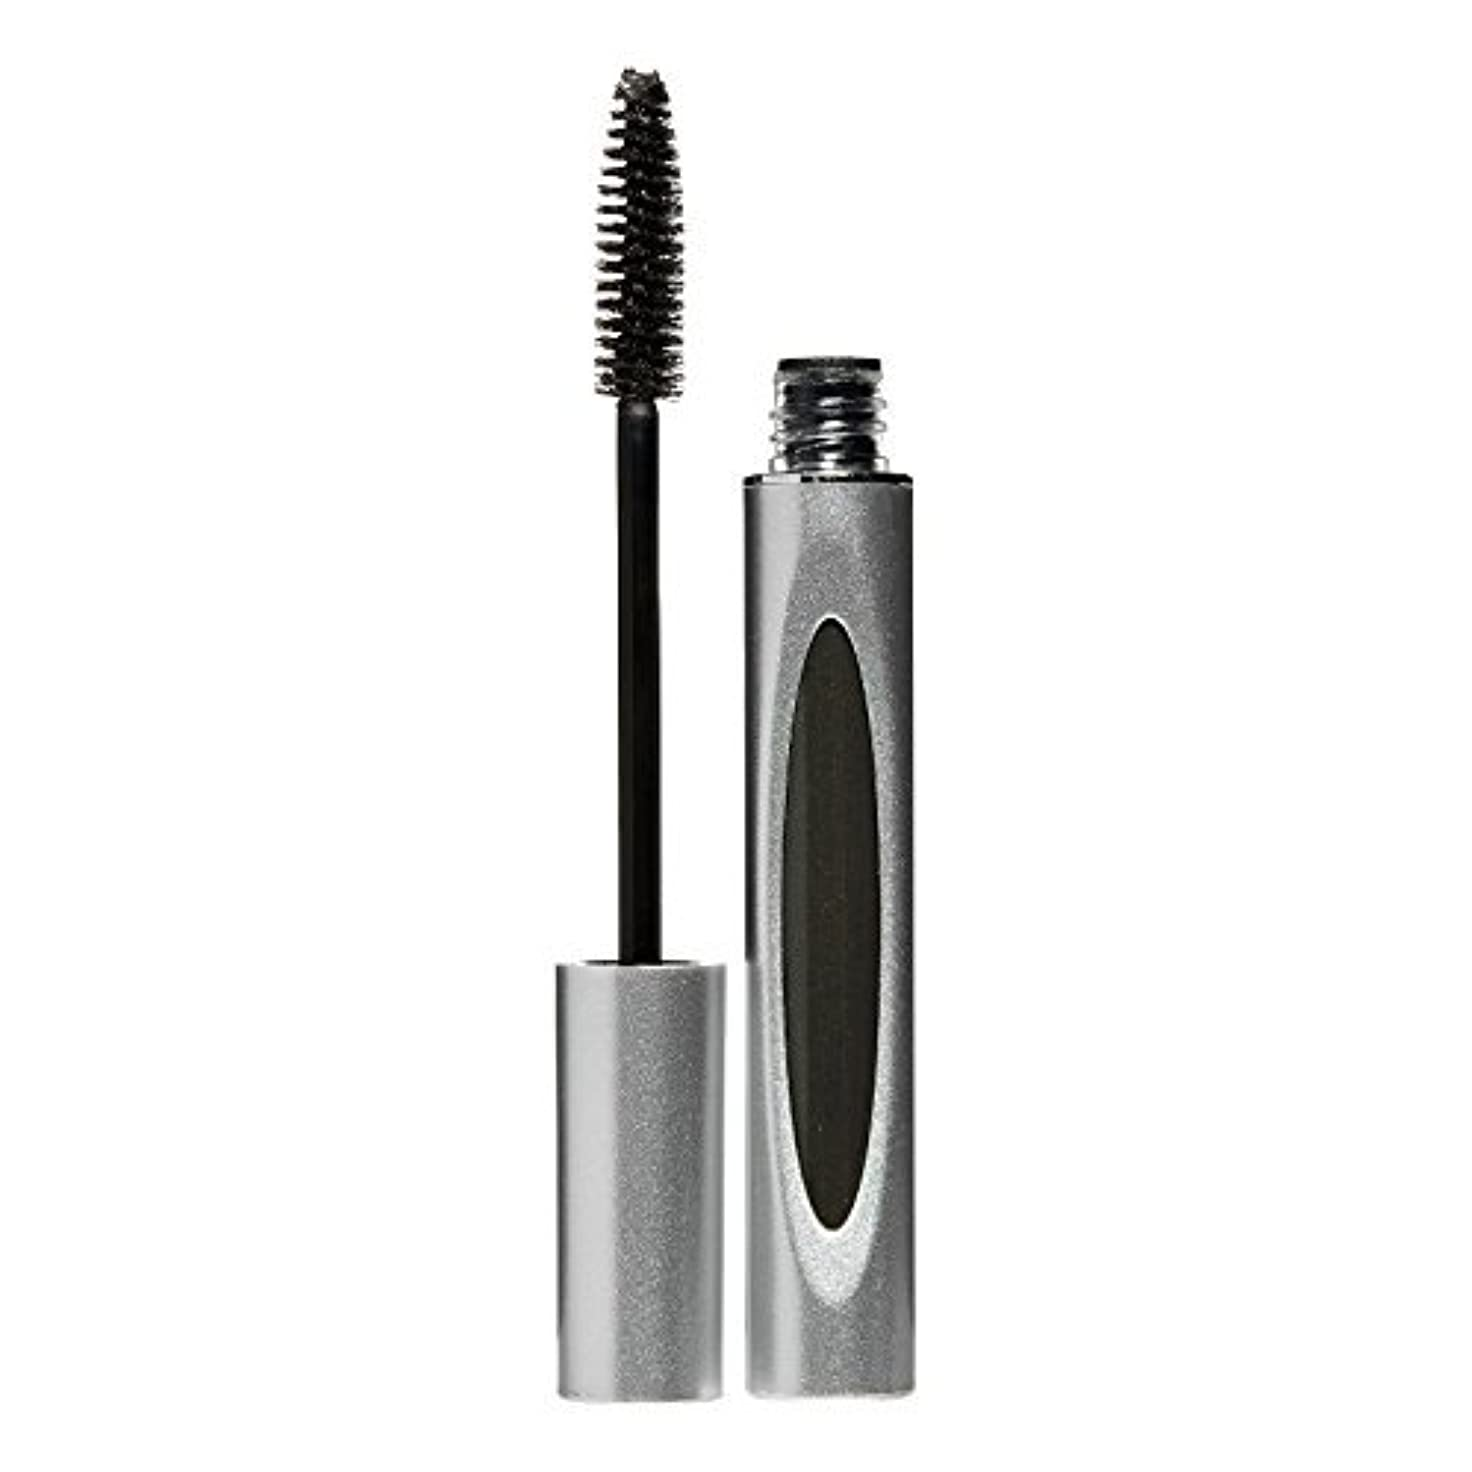 Honeybee Gardens, Truly Natural Mascara, Expresso, 0.2 oz (6 ml)